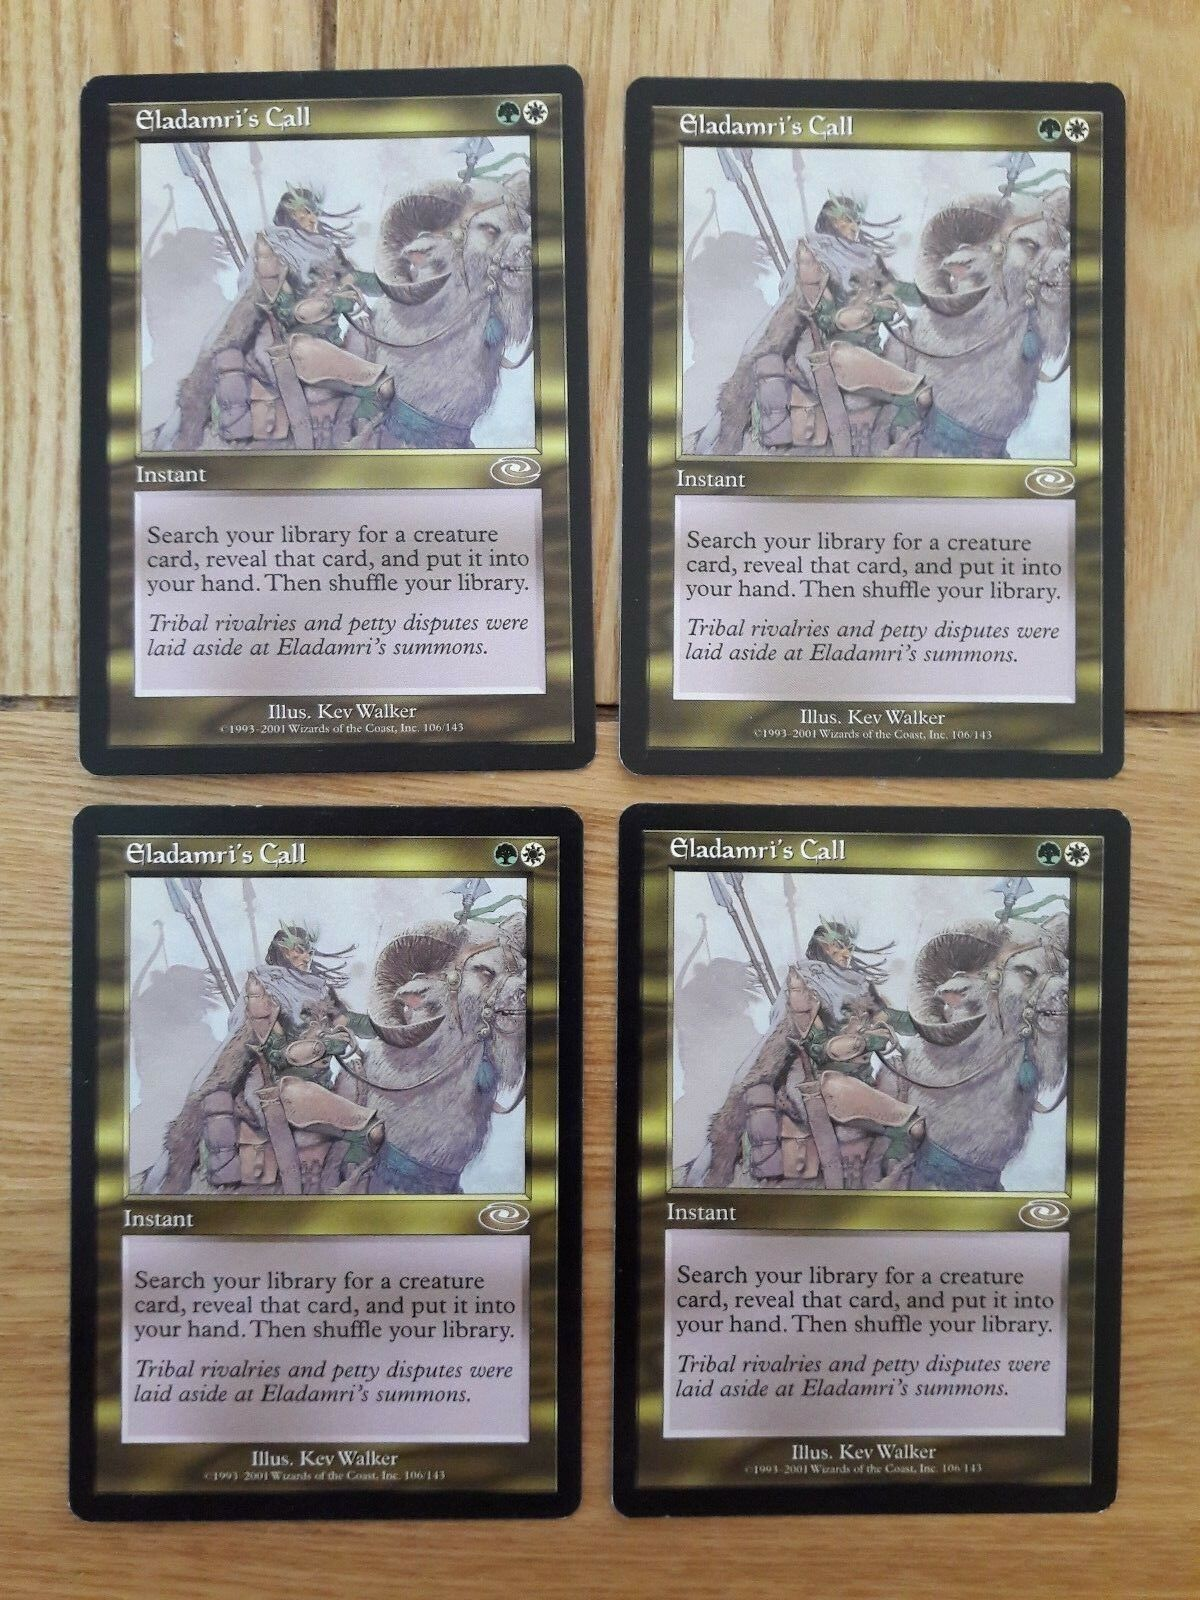 Magic the gathering karten - planeshift - eladamri nennen, 4 x 4.